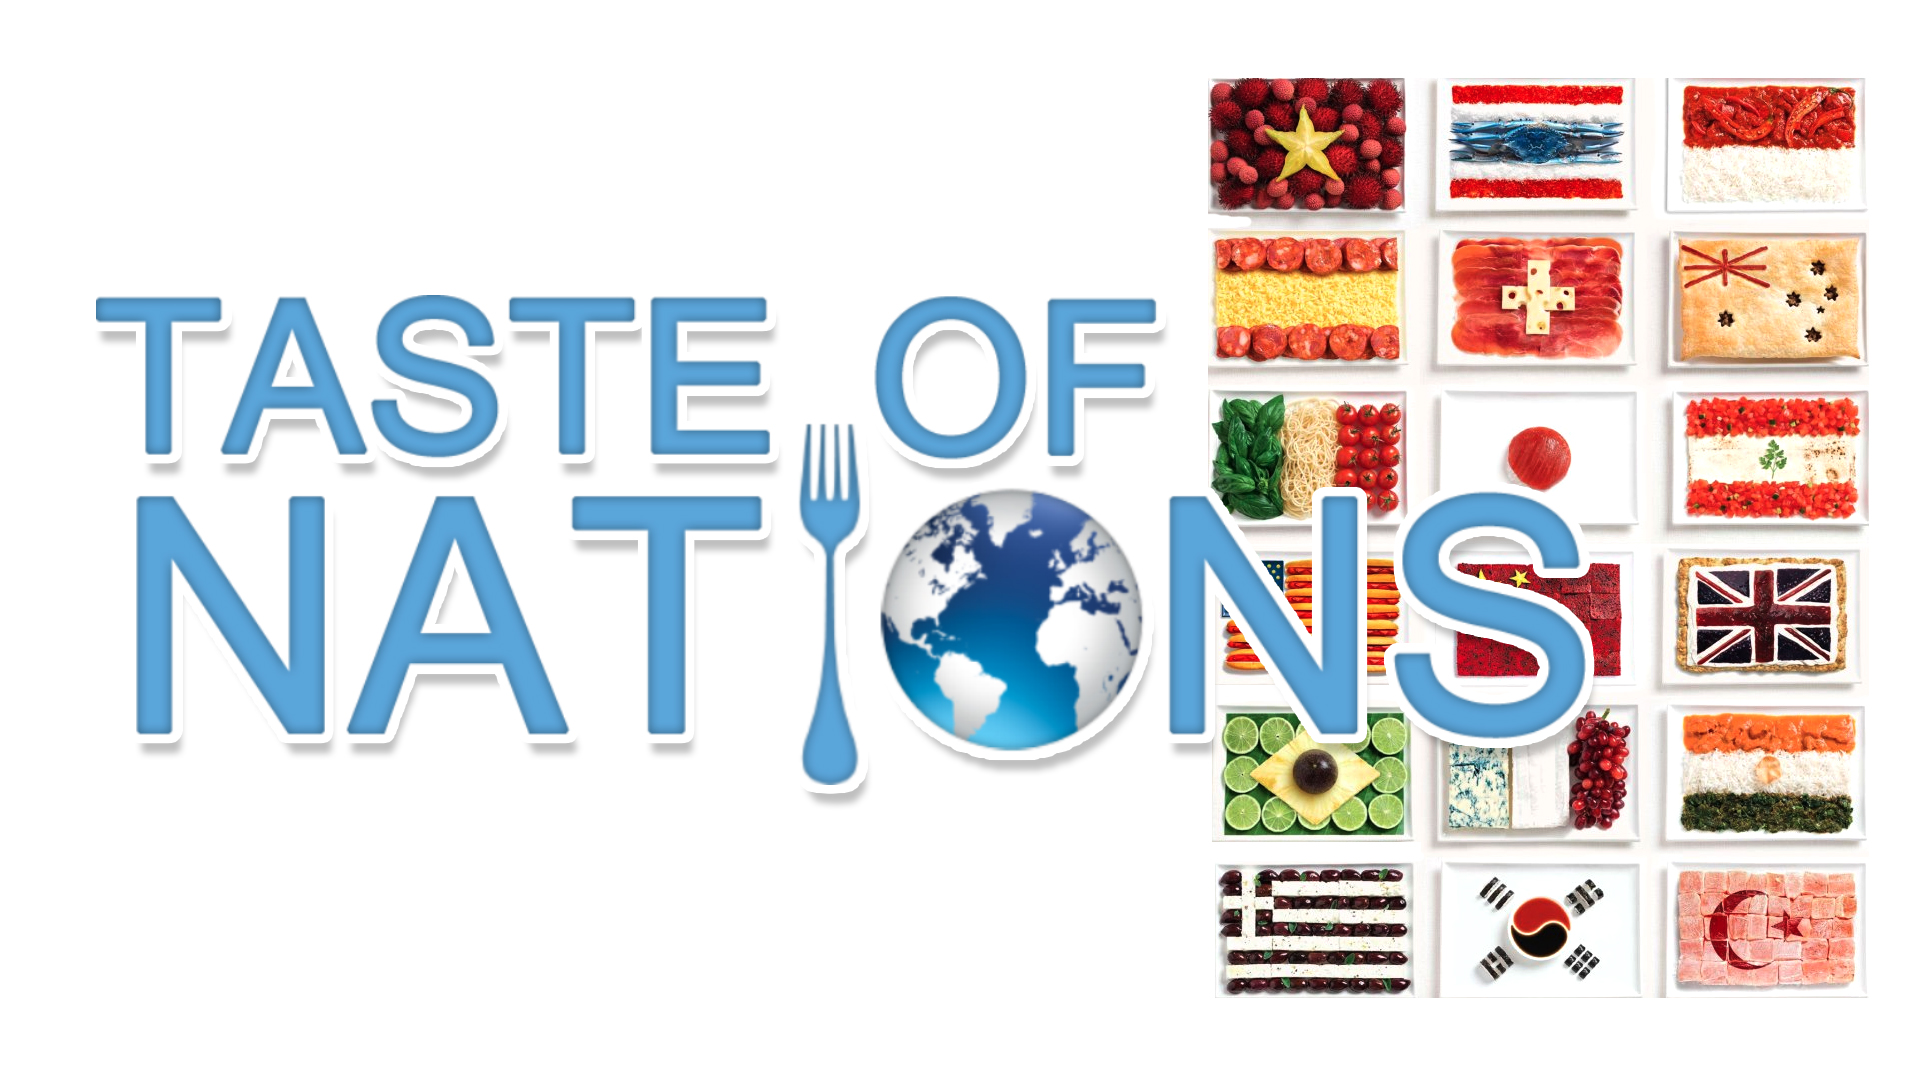 Taste of nations2